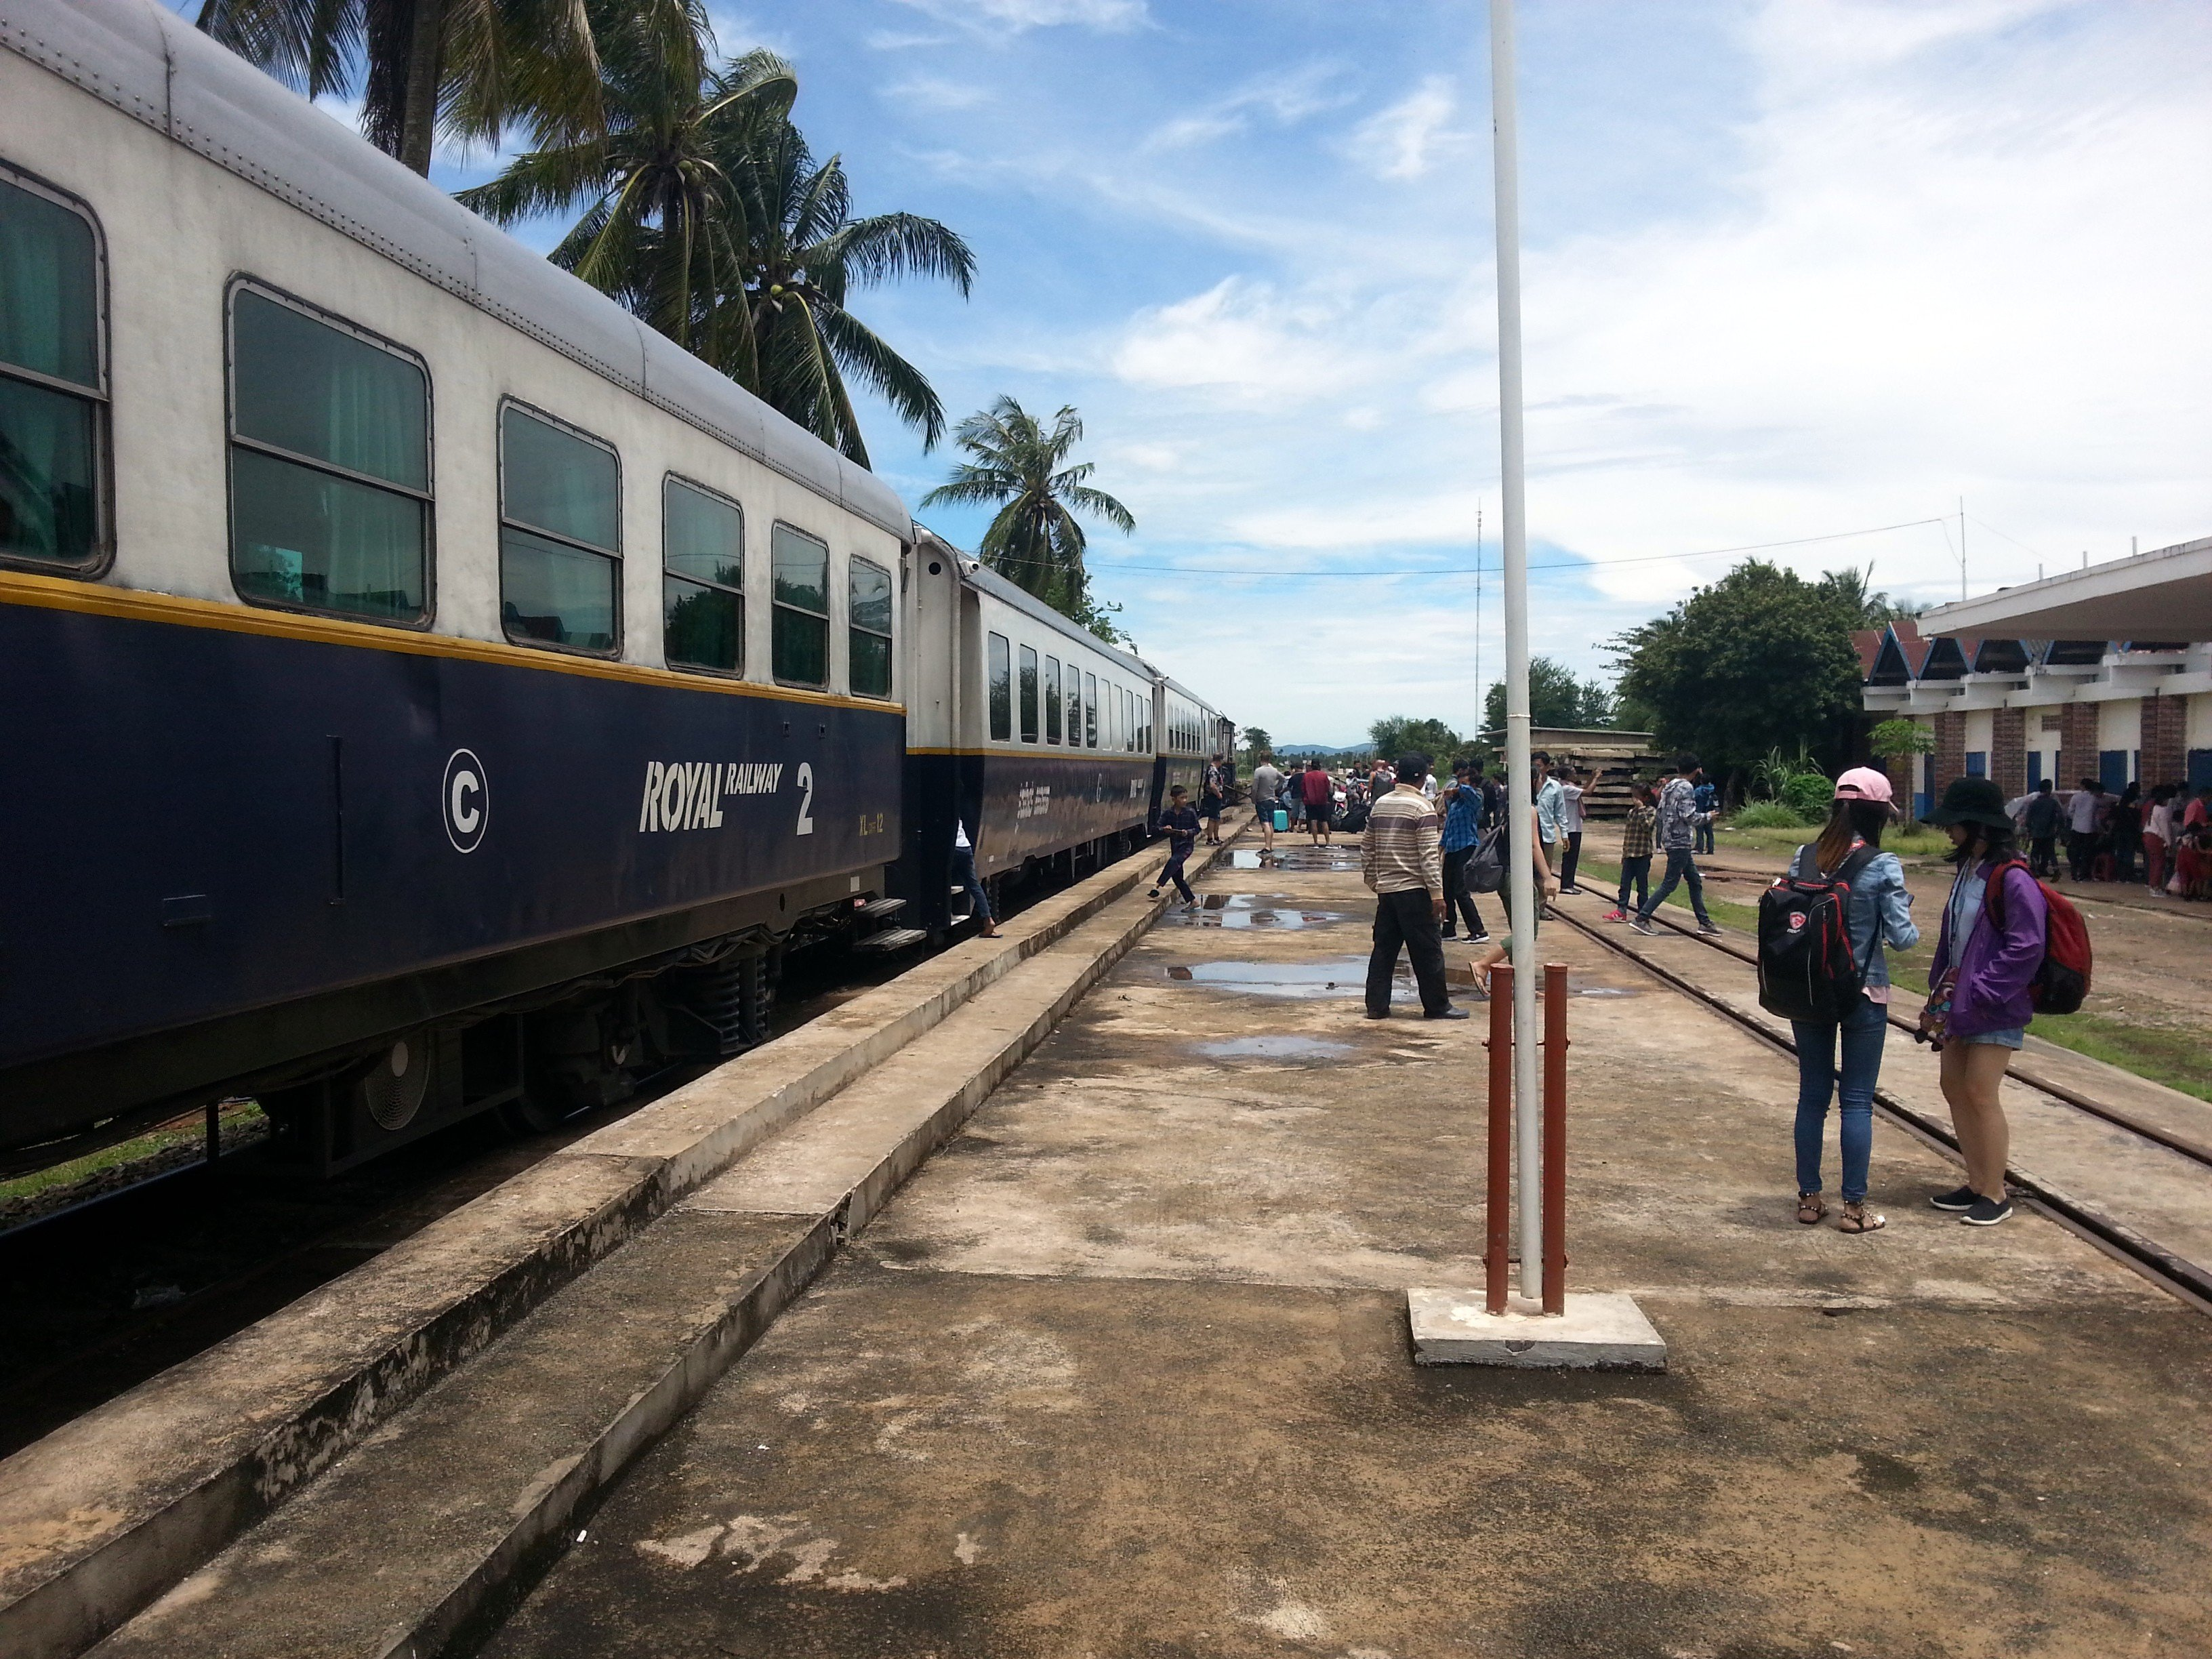 Train at Kampot Railway Station